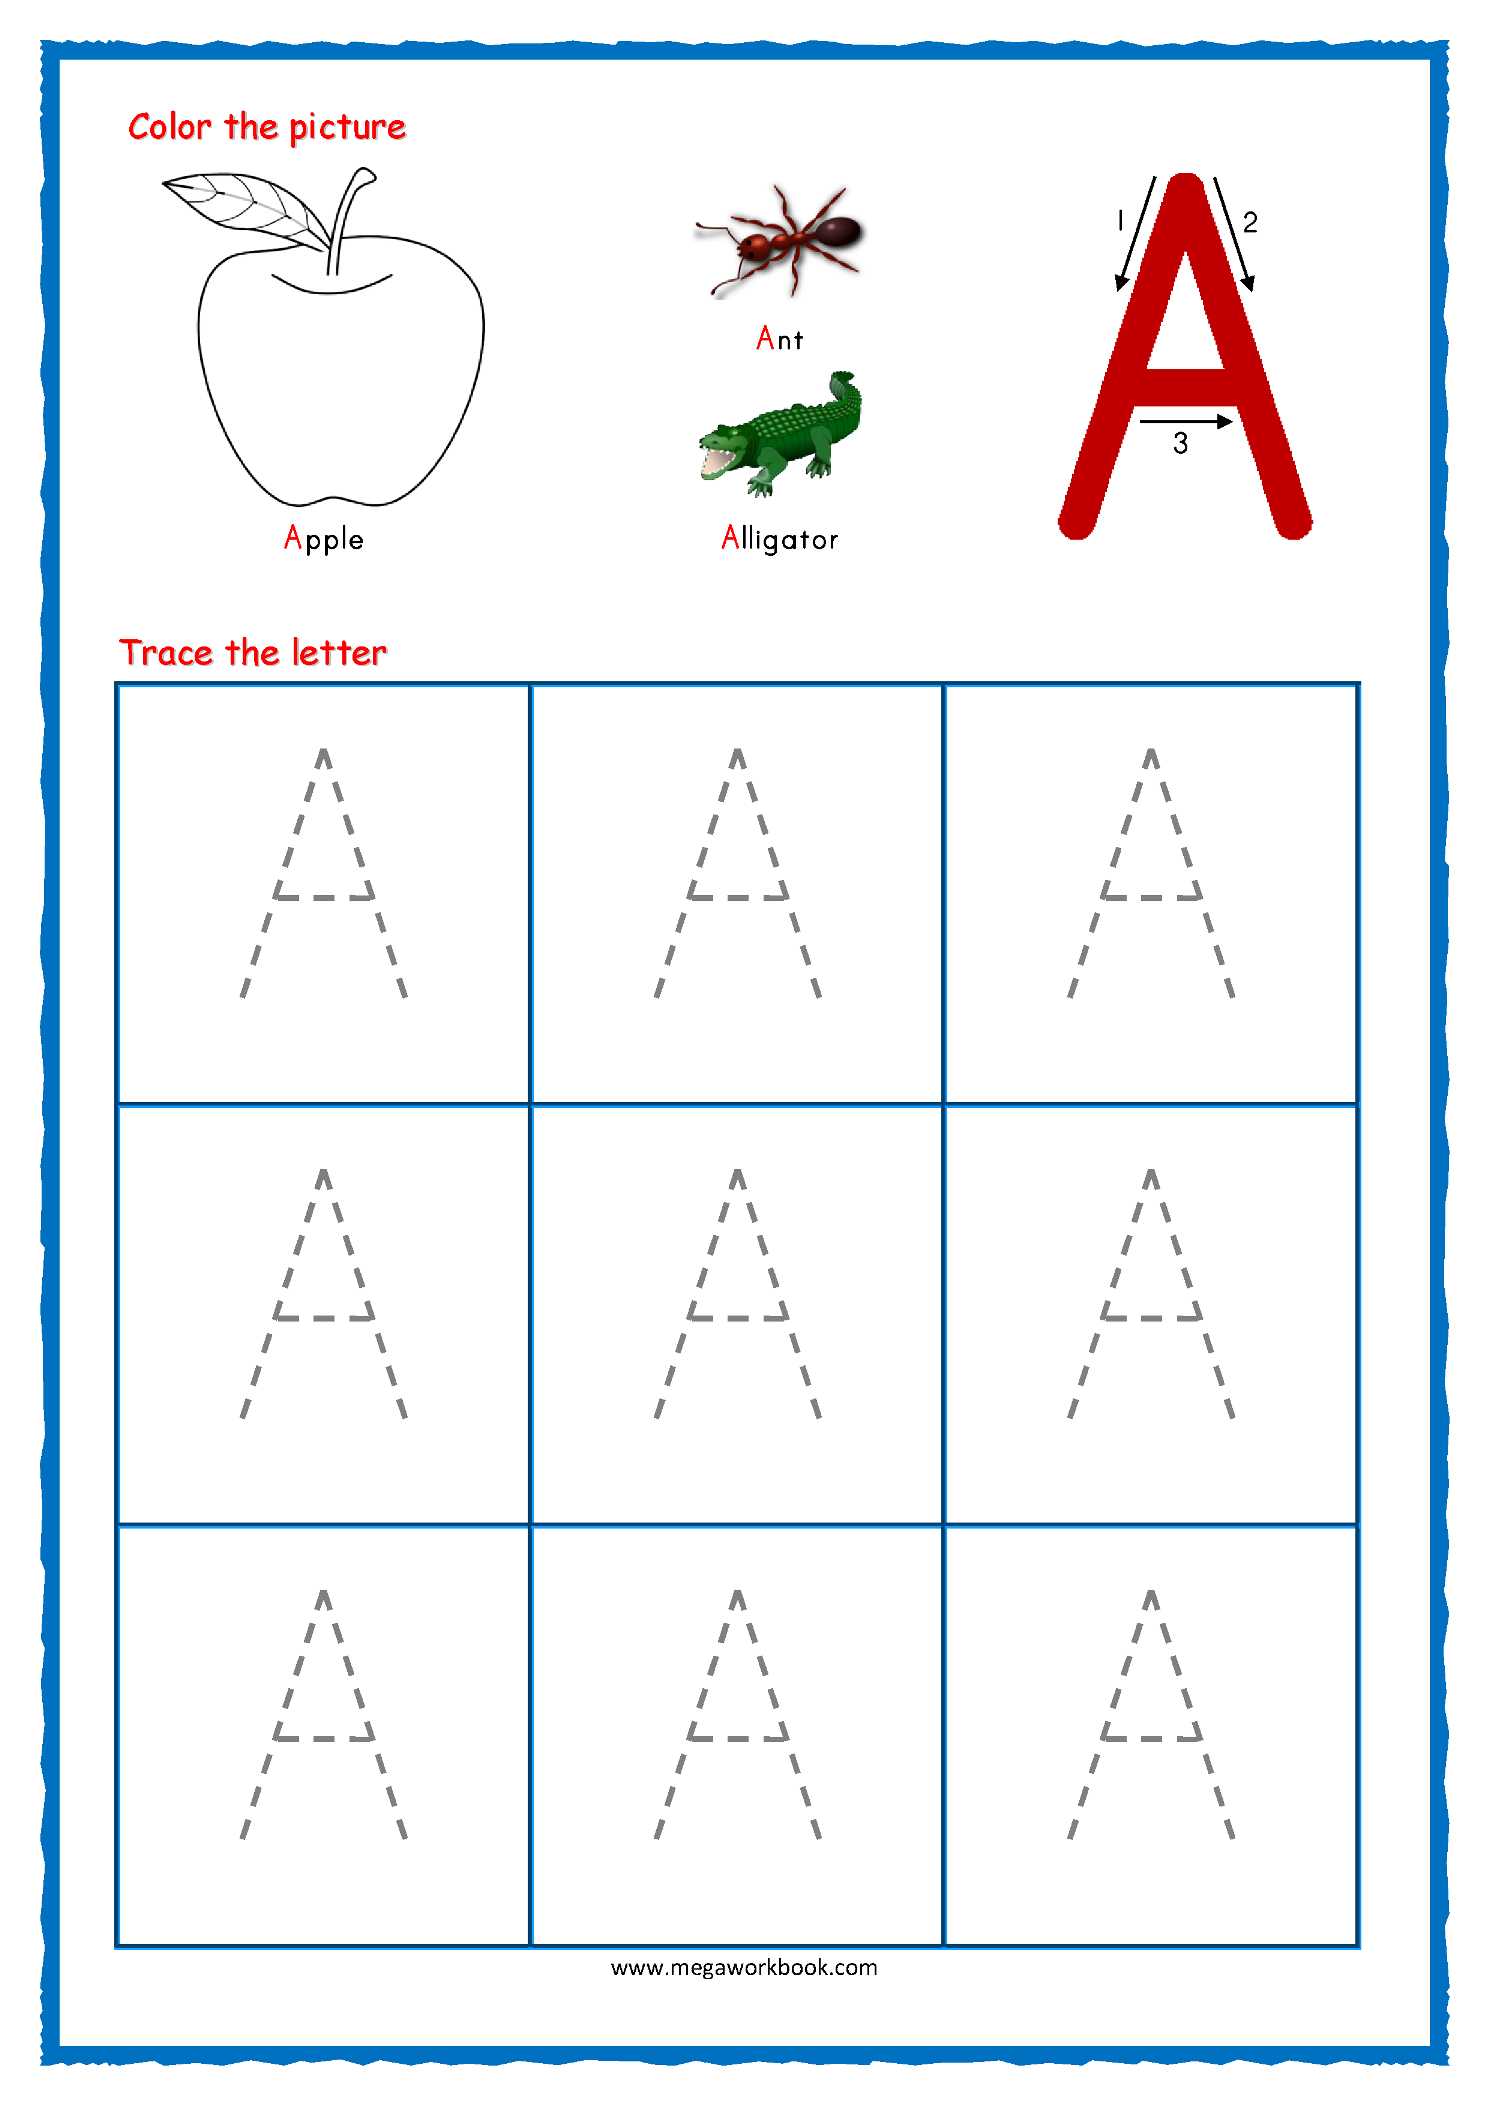 Tracing Letters - Alphabet Tracing - Capital Letters pertaining to Printable Tracing Letters For Toddlers